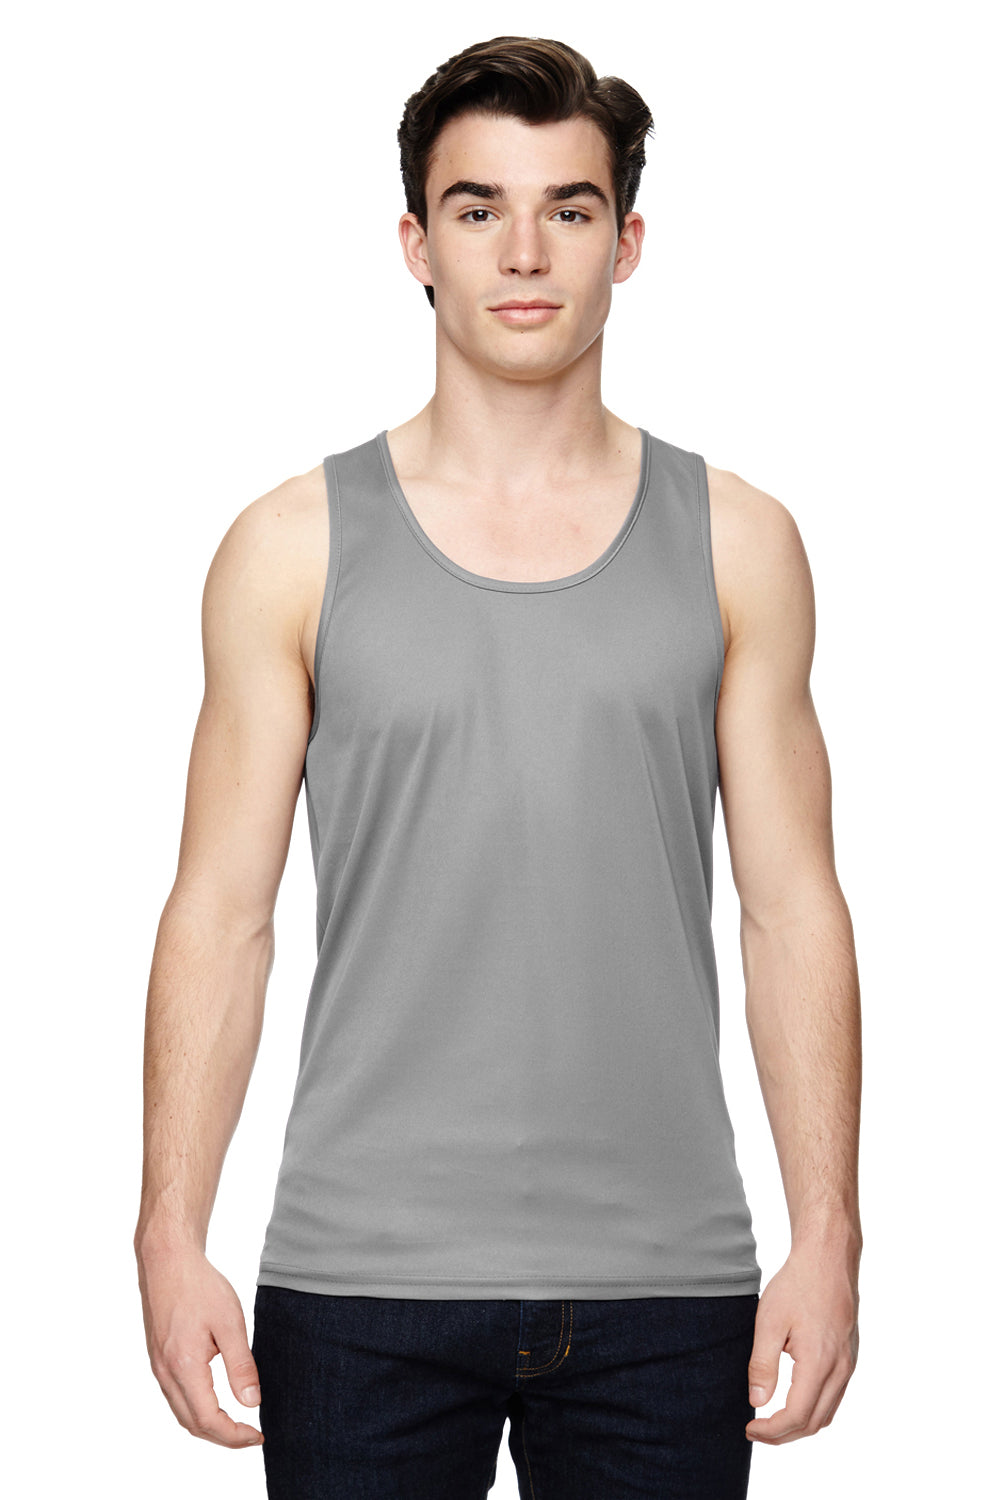 Augusta Sportswear 703 Mens Training Moisture Wicking Tank Top Silver Grey Front